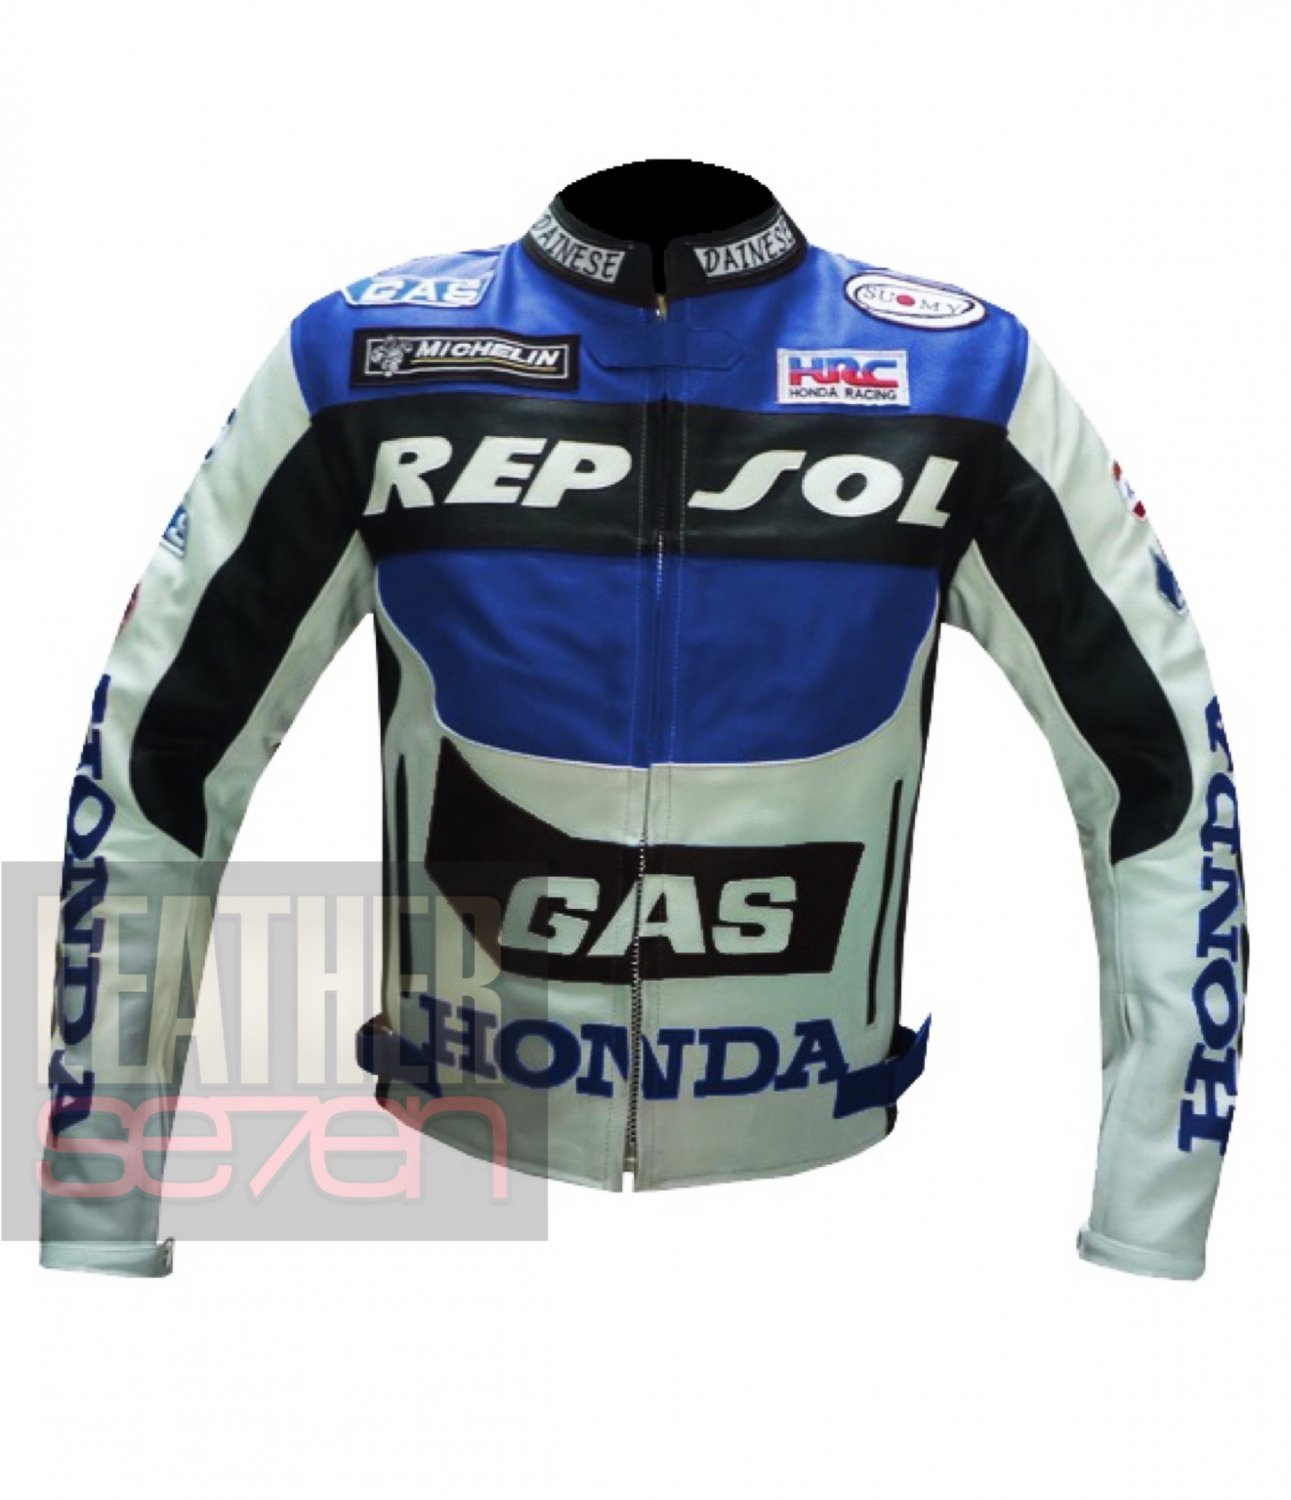 New Men's Fashion Outclass Cowhide Leather Safety Jacket .. Honda GAS Repsol Blue